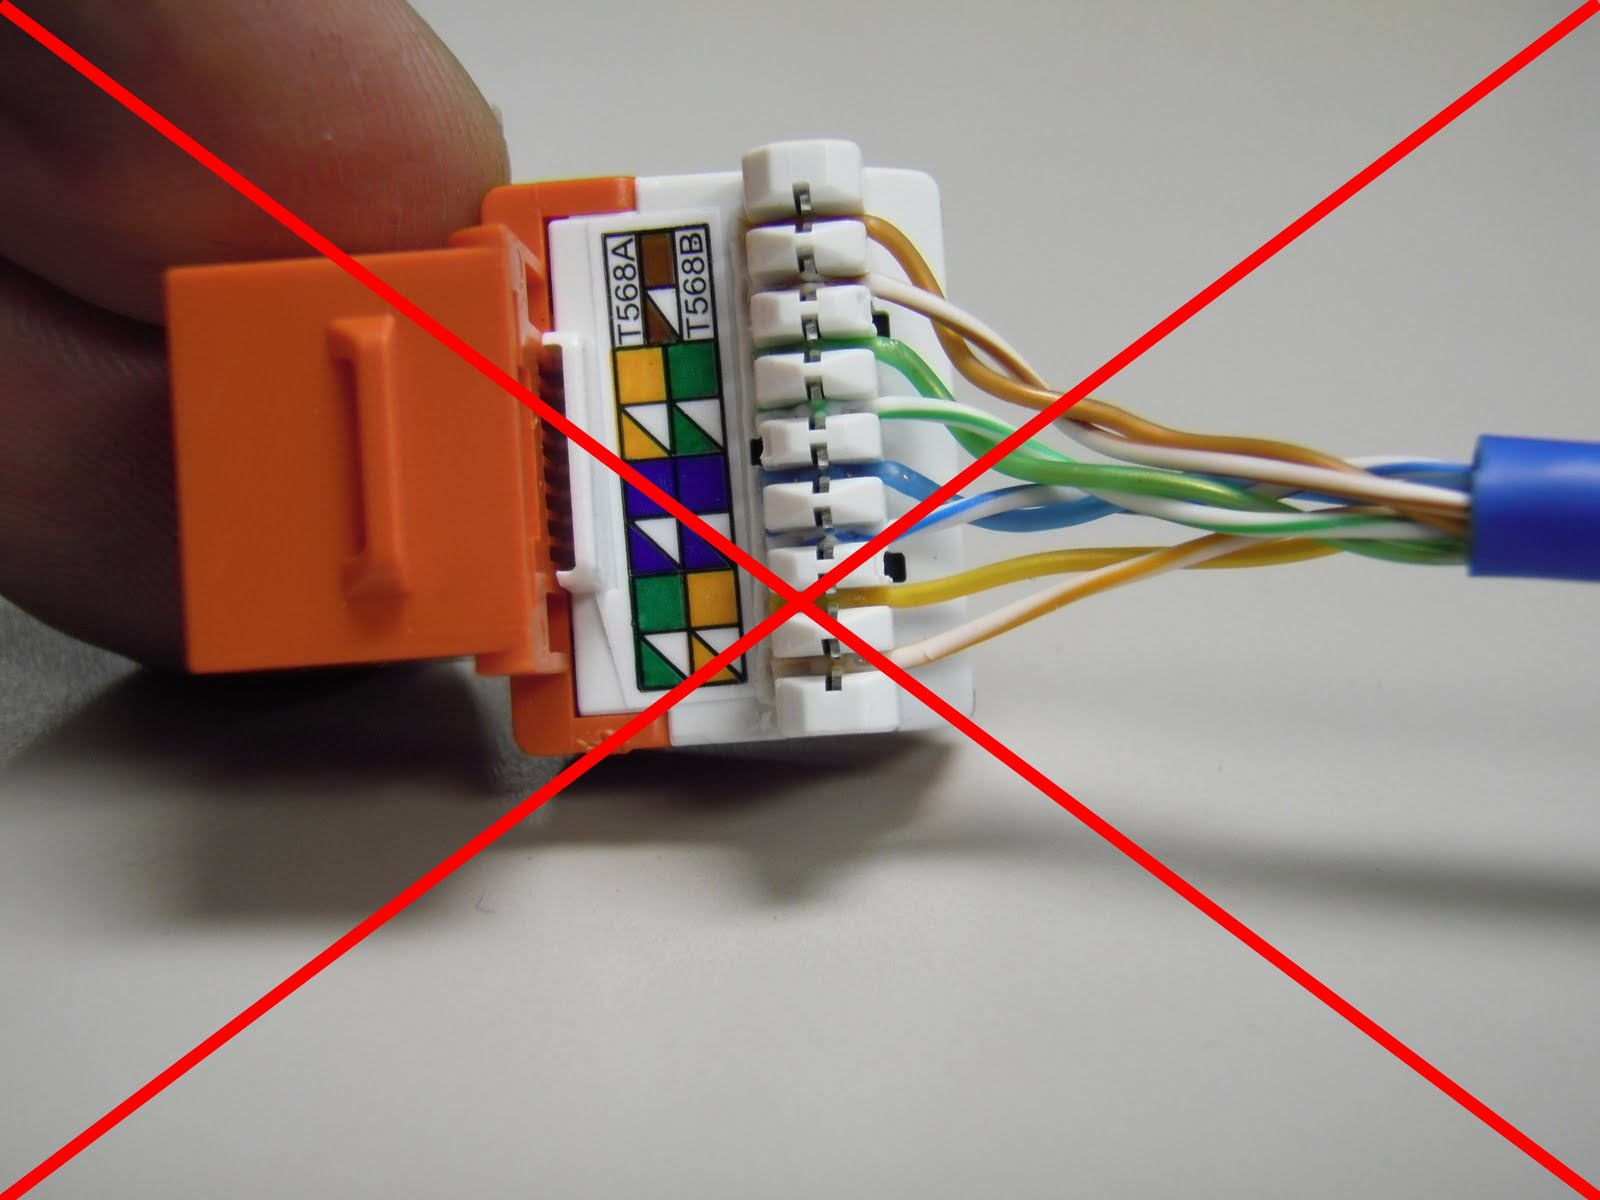 CAT5E+ER+JACK+PUNCHED+WRONG+RED+X the trench how to punch down cat5e cat6 keystone jacks cat 5 wiring diagram wall jack at gsmportal.co